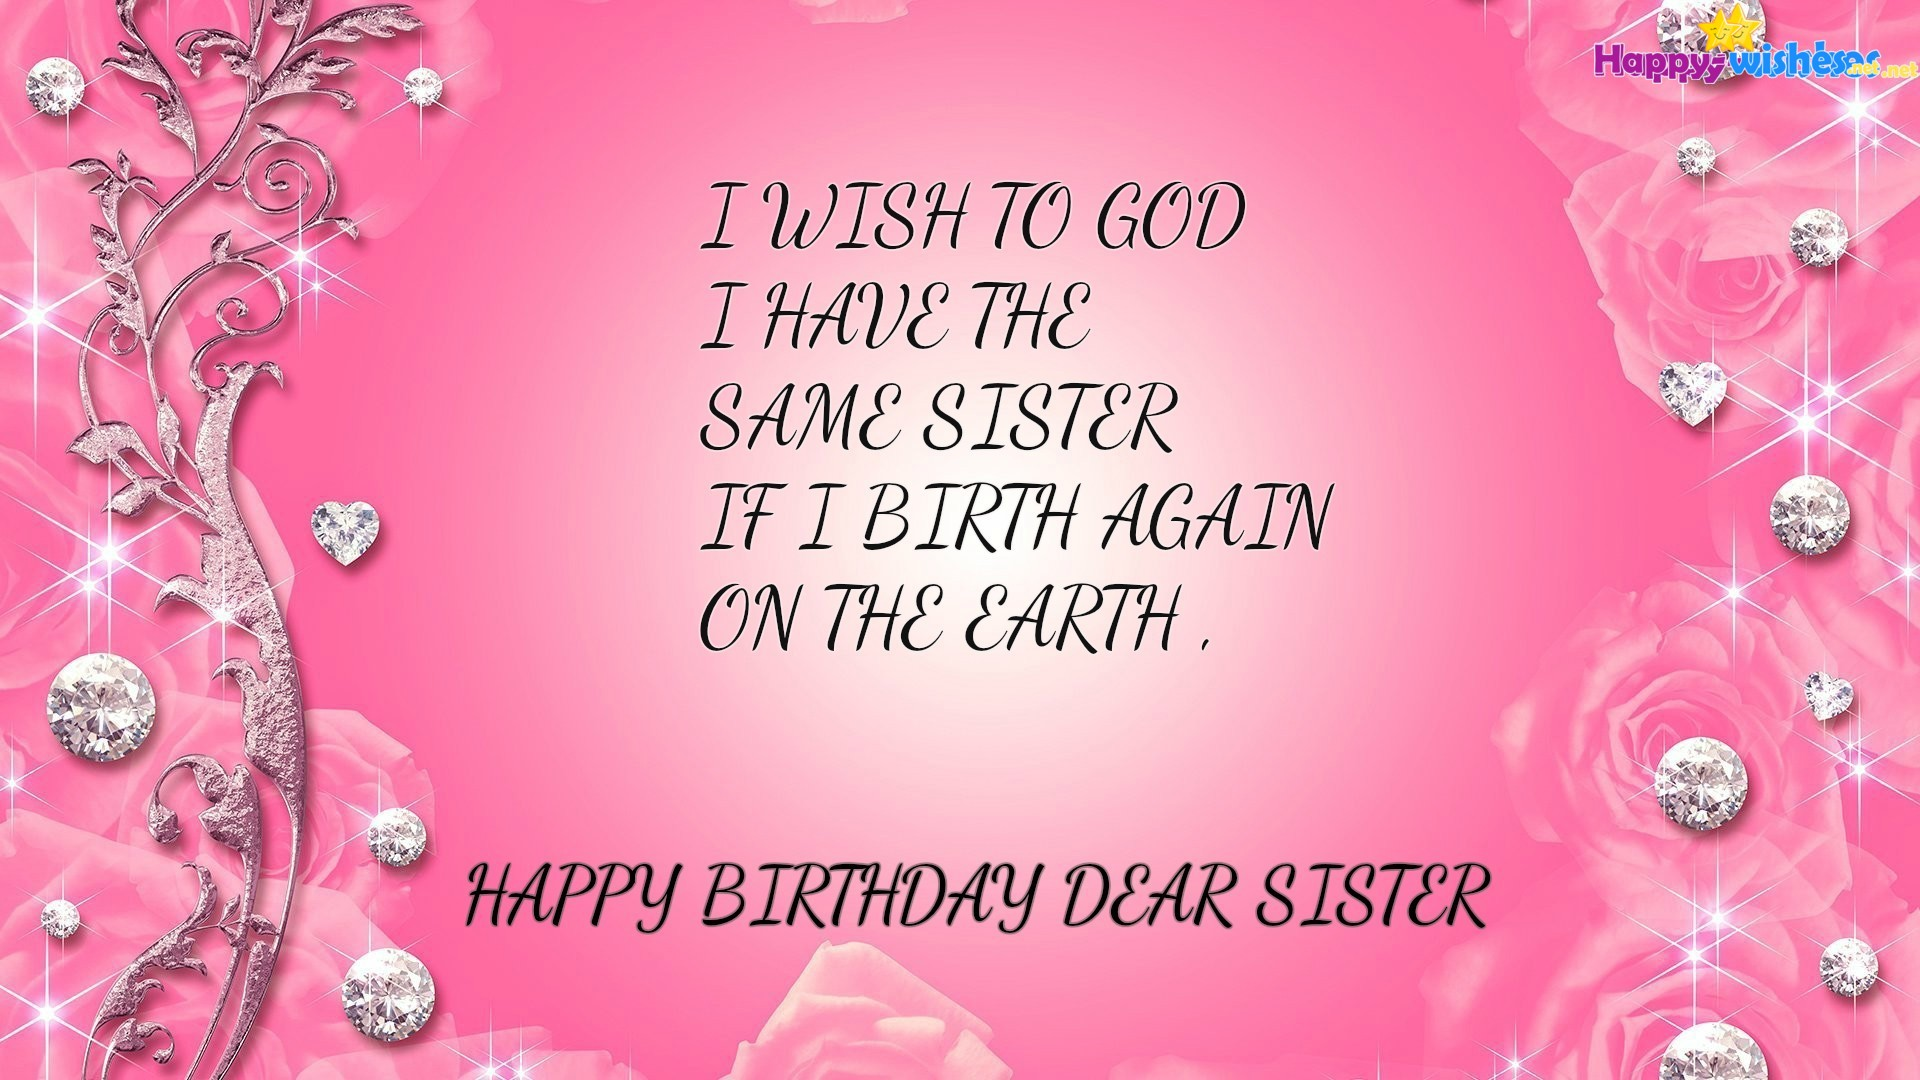 Happy Birthday Sister Wallpapers Hd Download Free Background Beauty Hd Pink 1920x1080 Wallpaper Teahub Io